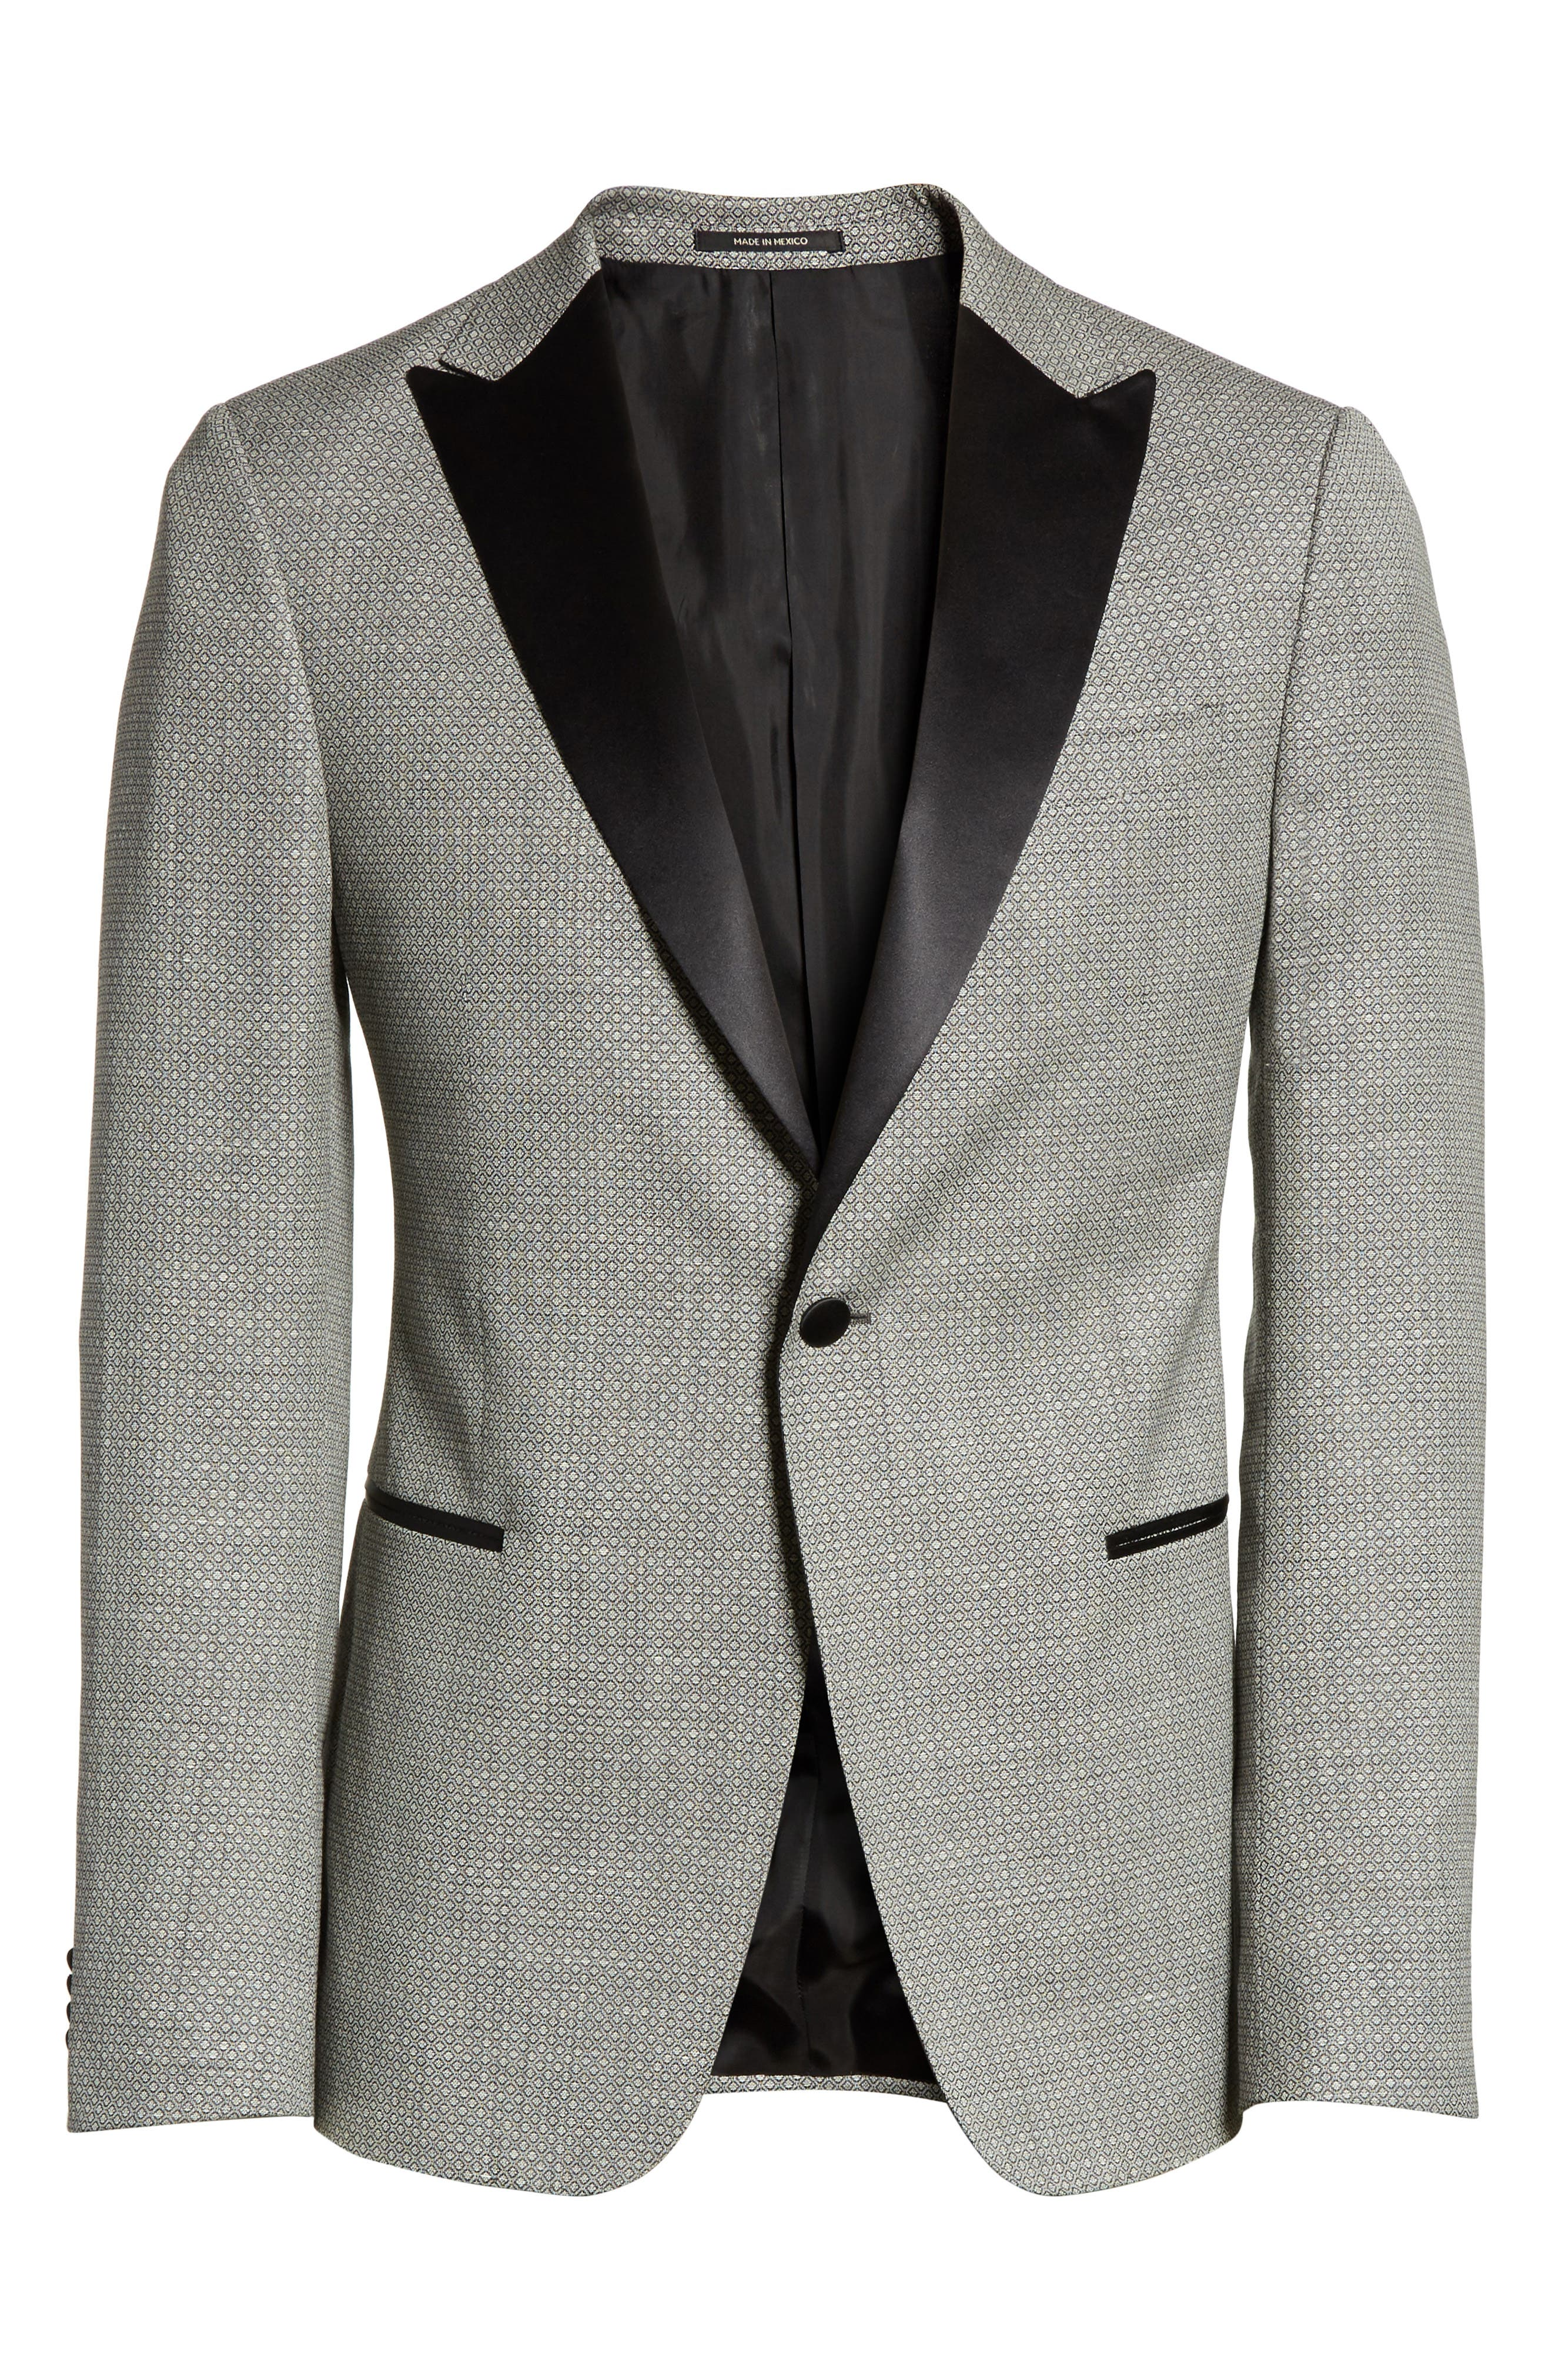 Classic Fit Stretch Wool & Linen Dinner Jacket,                             Alternate thumbnail 6, color,                             Dark Grey Check